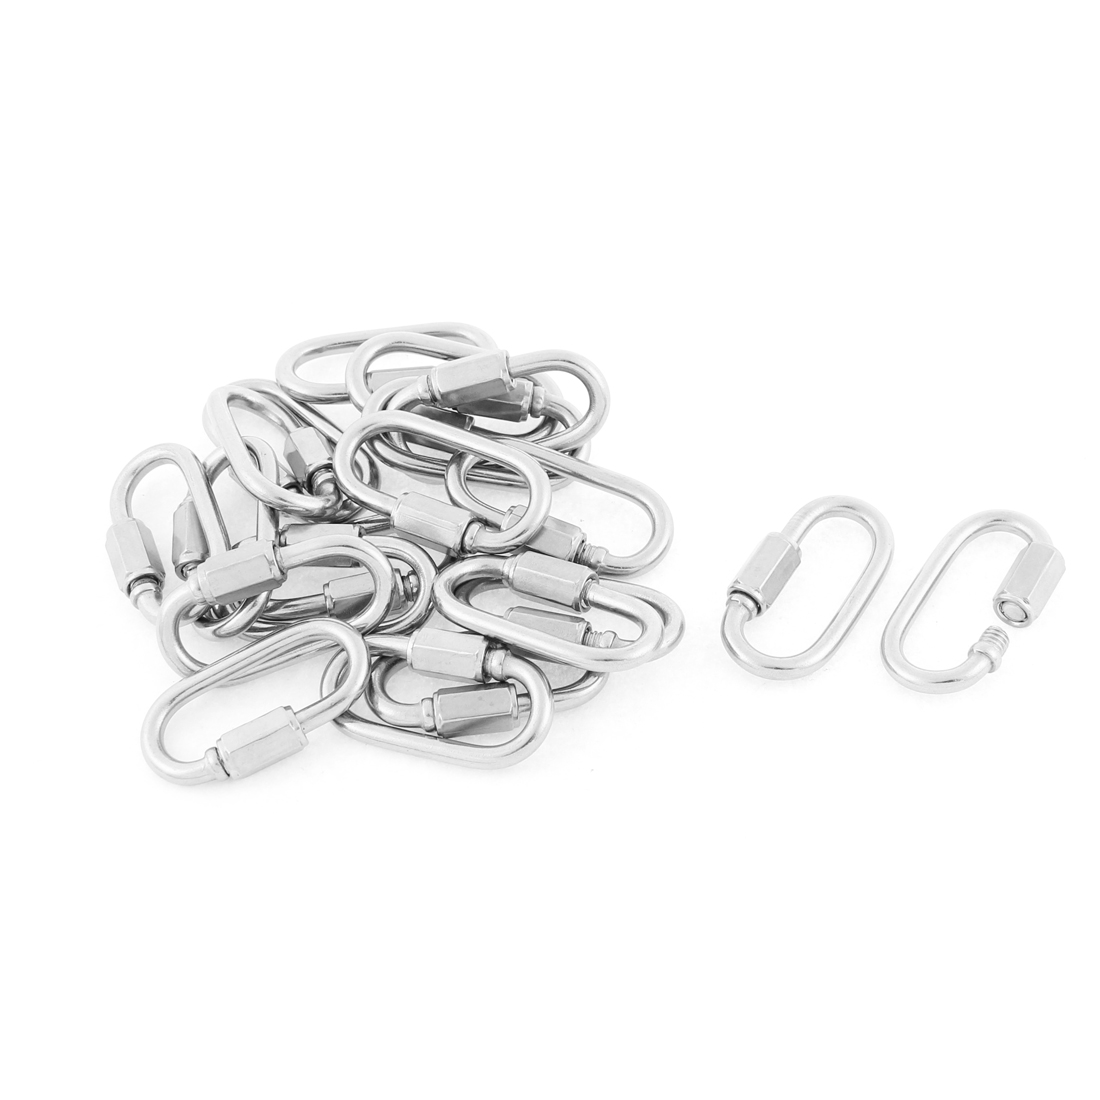 M3.5 Thickness Multifunctional Stainless Steel Quick Links Carabiners Hook 20pcs